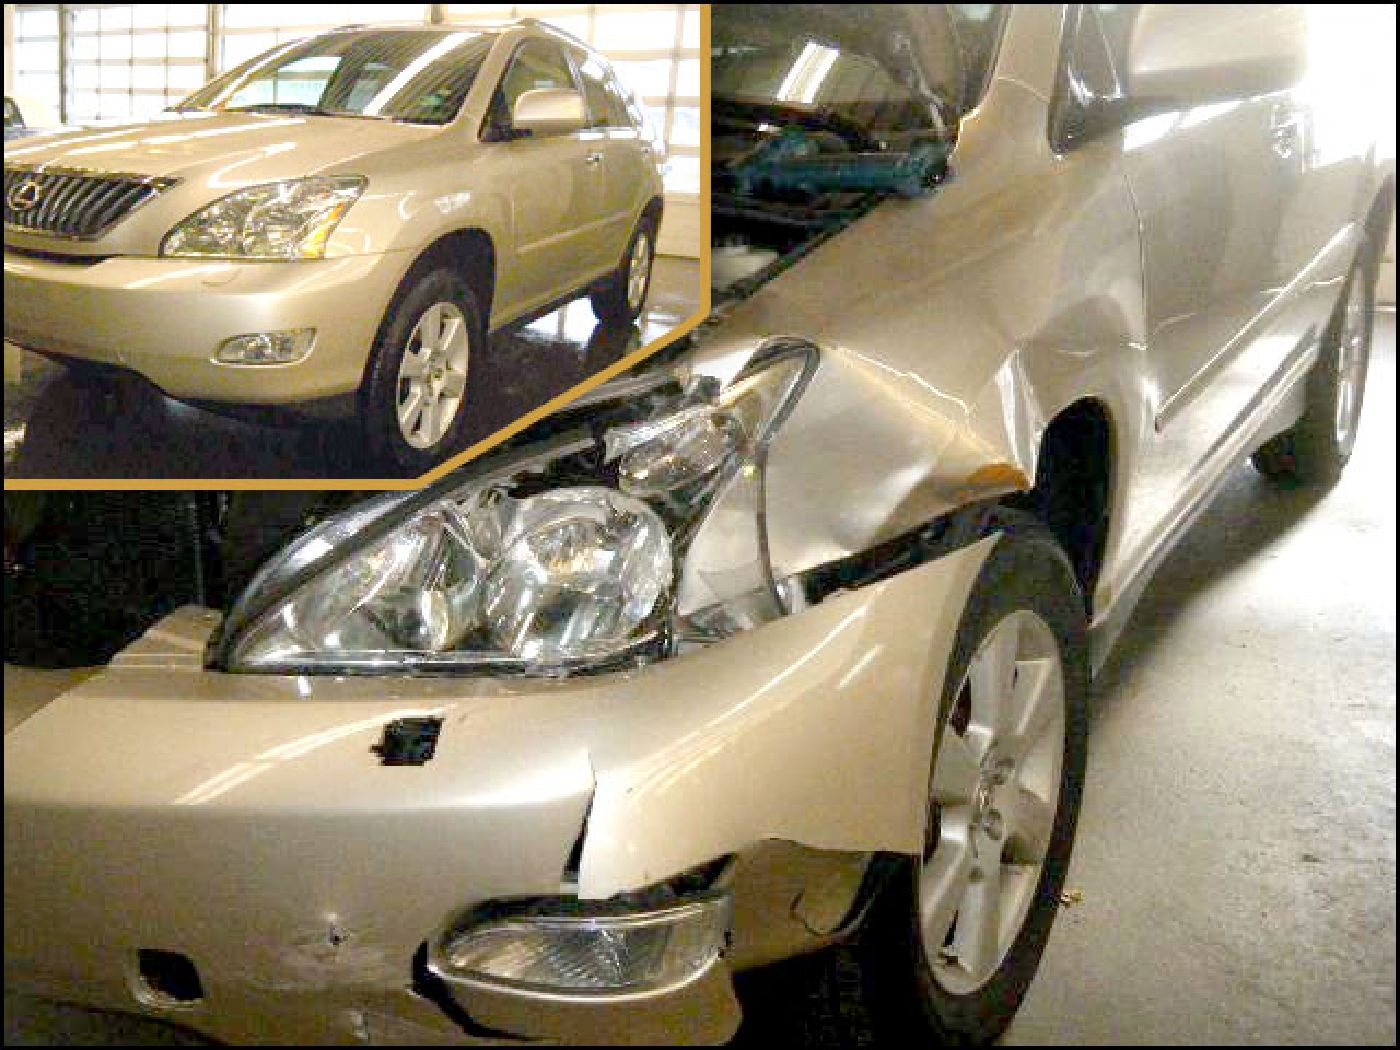 Auto body collision repair, before and after.